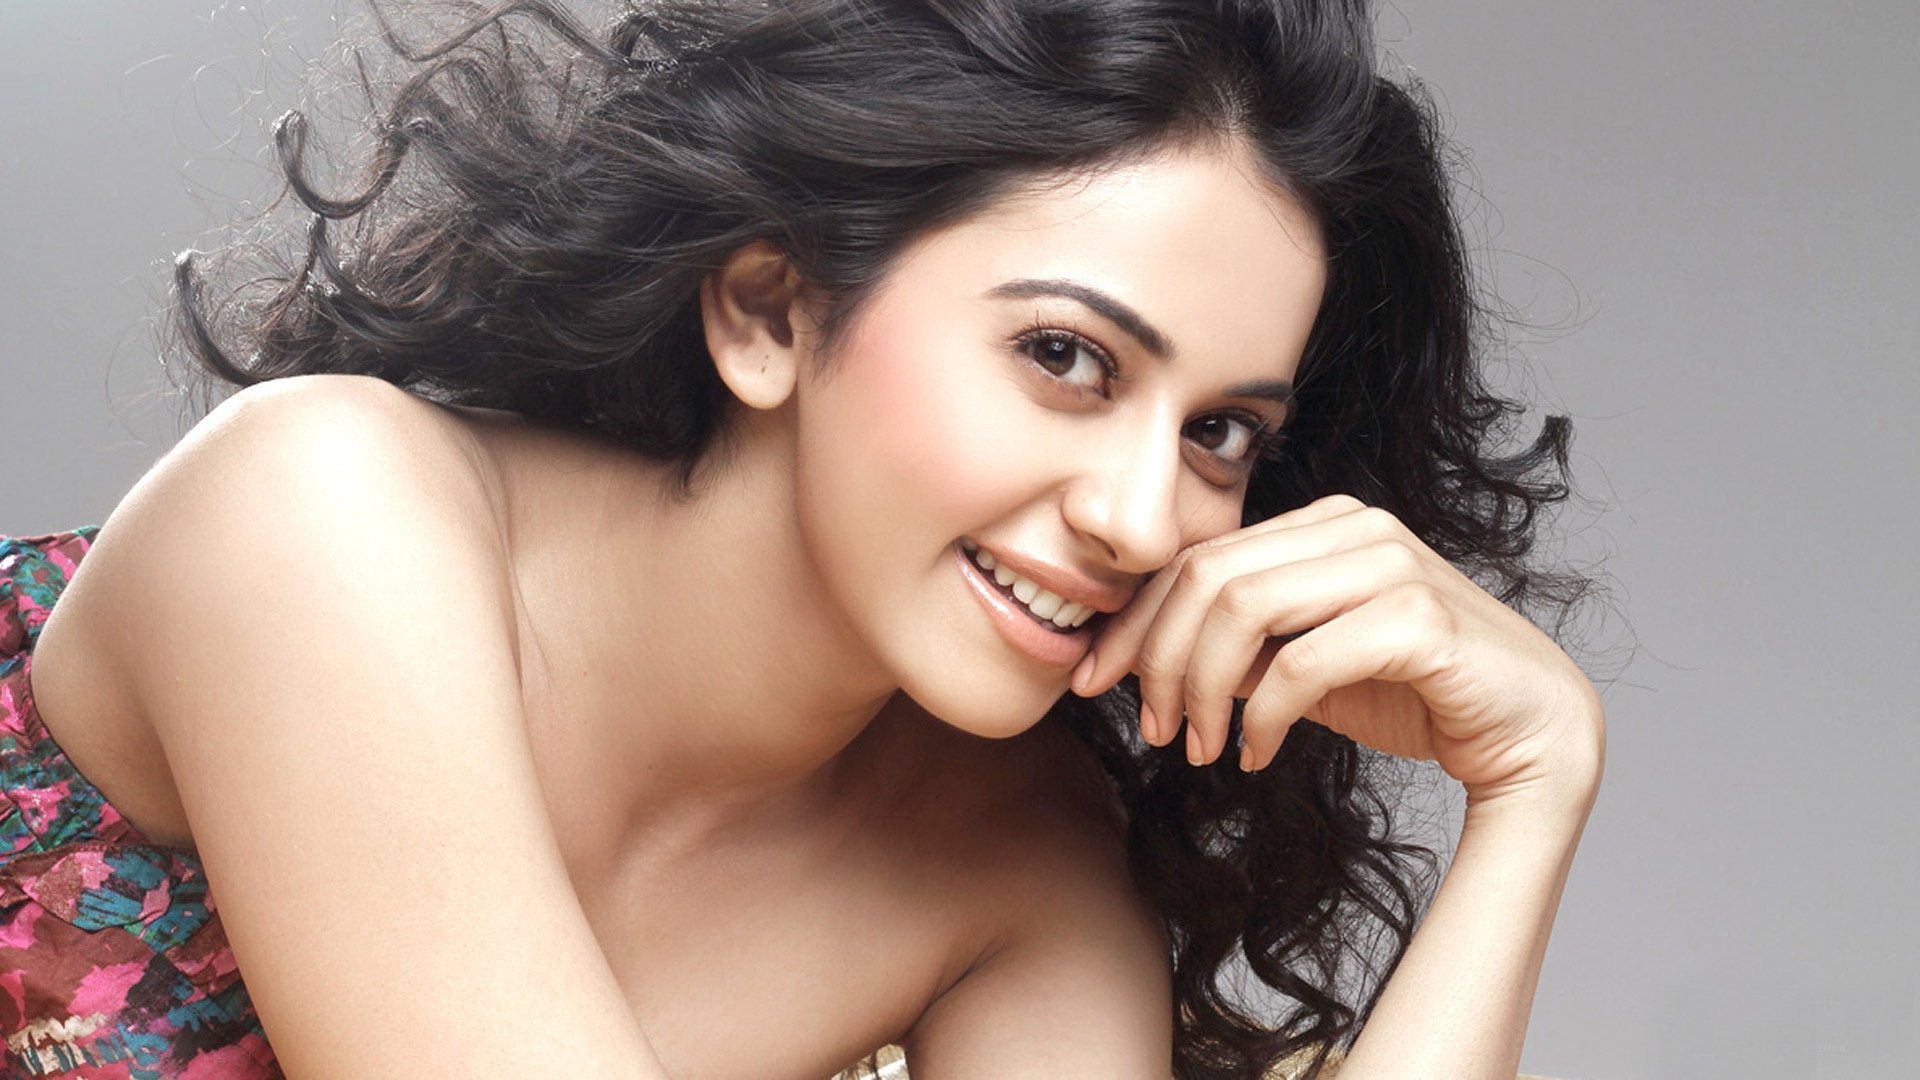 12 rakul preet singh hd wallpapers | background images - wallpaper abyss